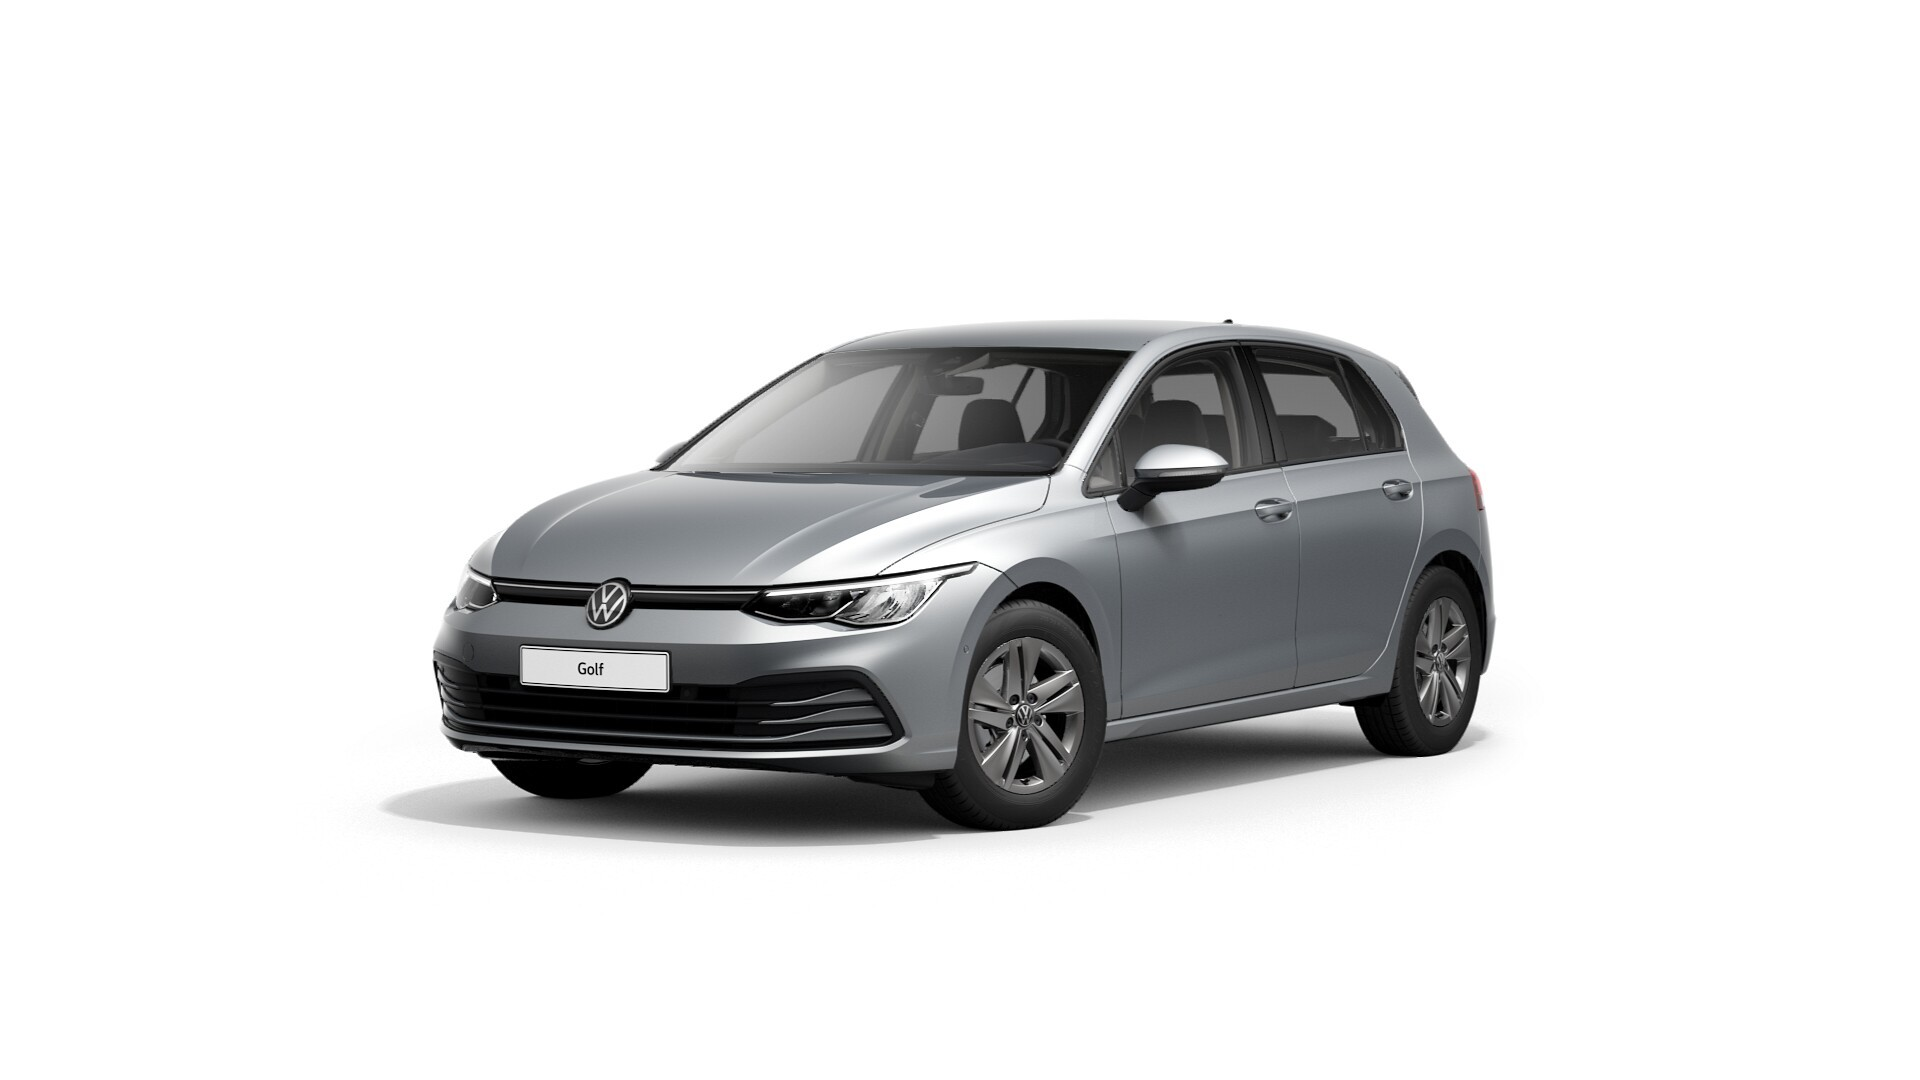 Noul Golf Life 1.0 TSI DSG mild hyb / 110 CP/81 kW / 1.0l / Direct Shift Gearbox / 4-usi : Volkswagen Golf LIFE